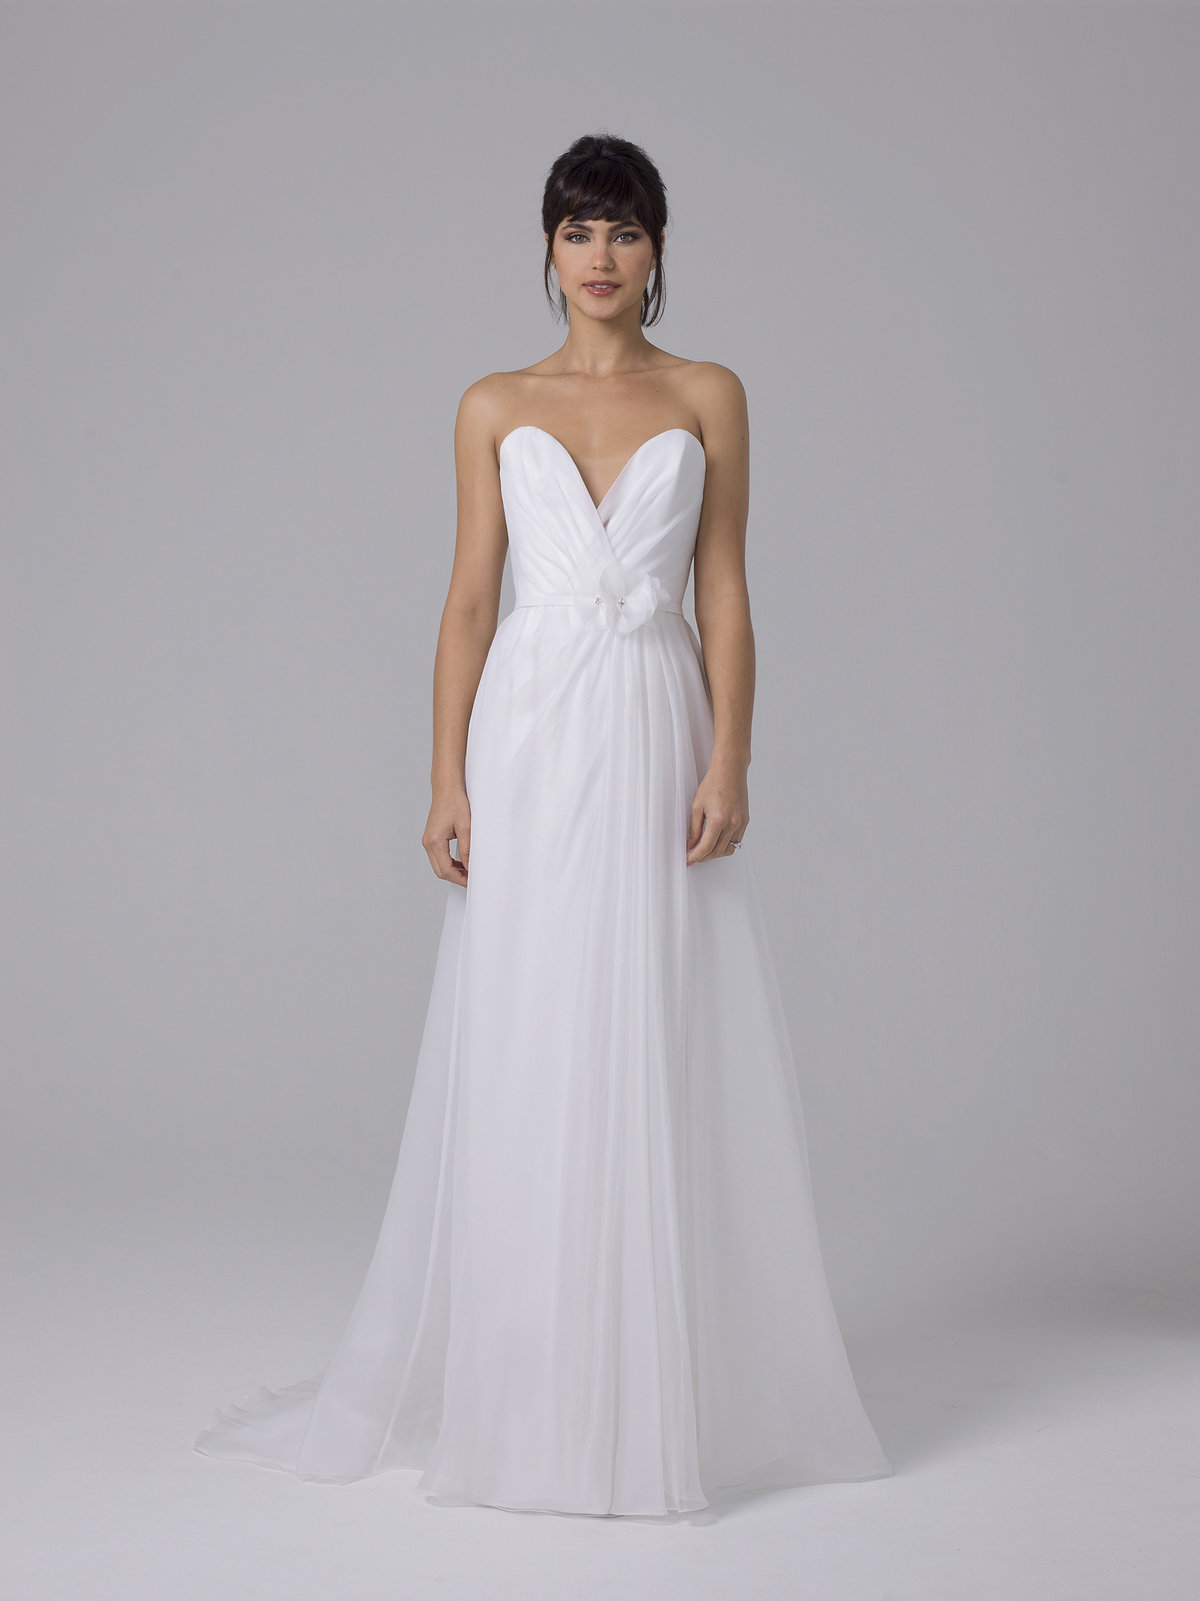 Liancarlo Strapless Sweetheart A-Line Tulle Wedding Dress